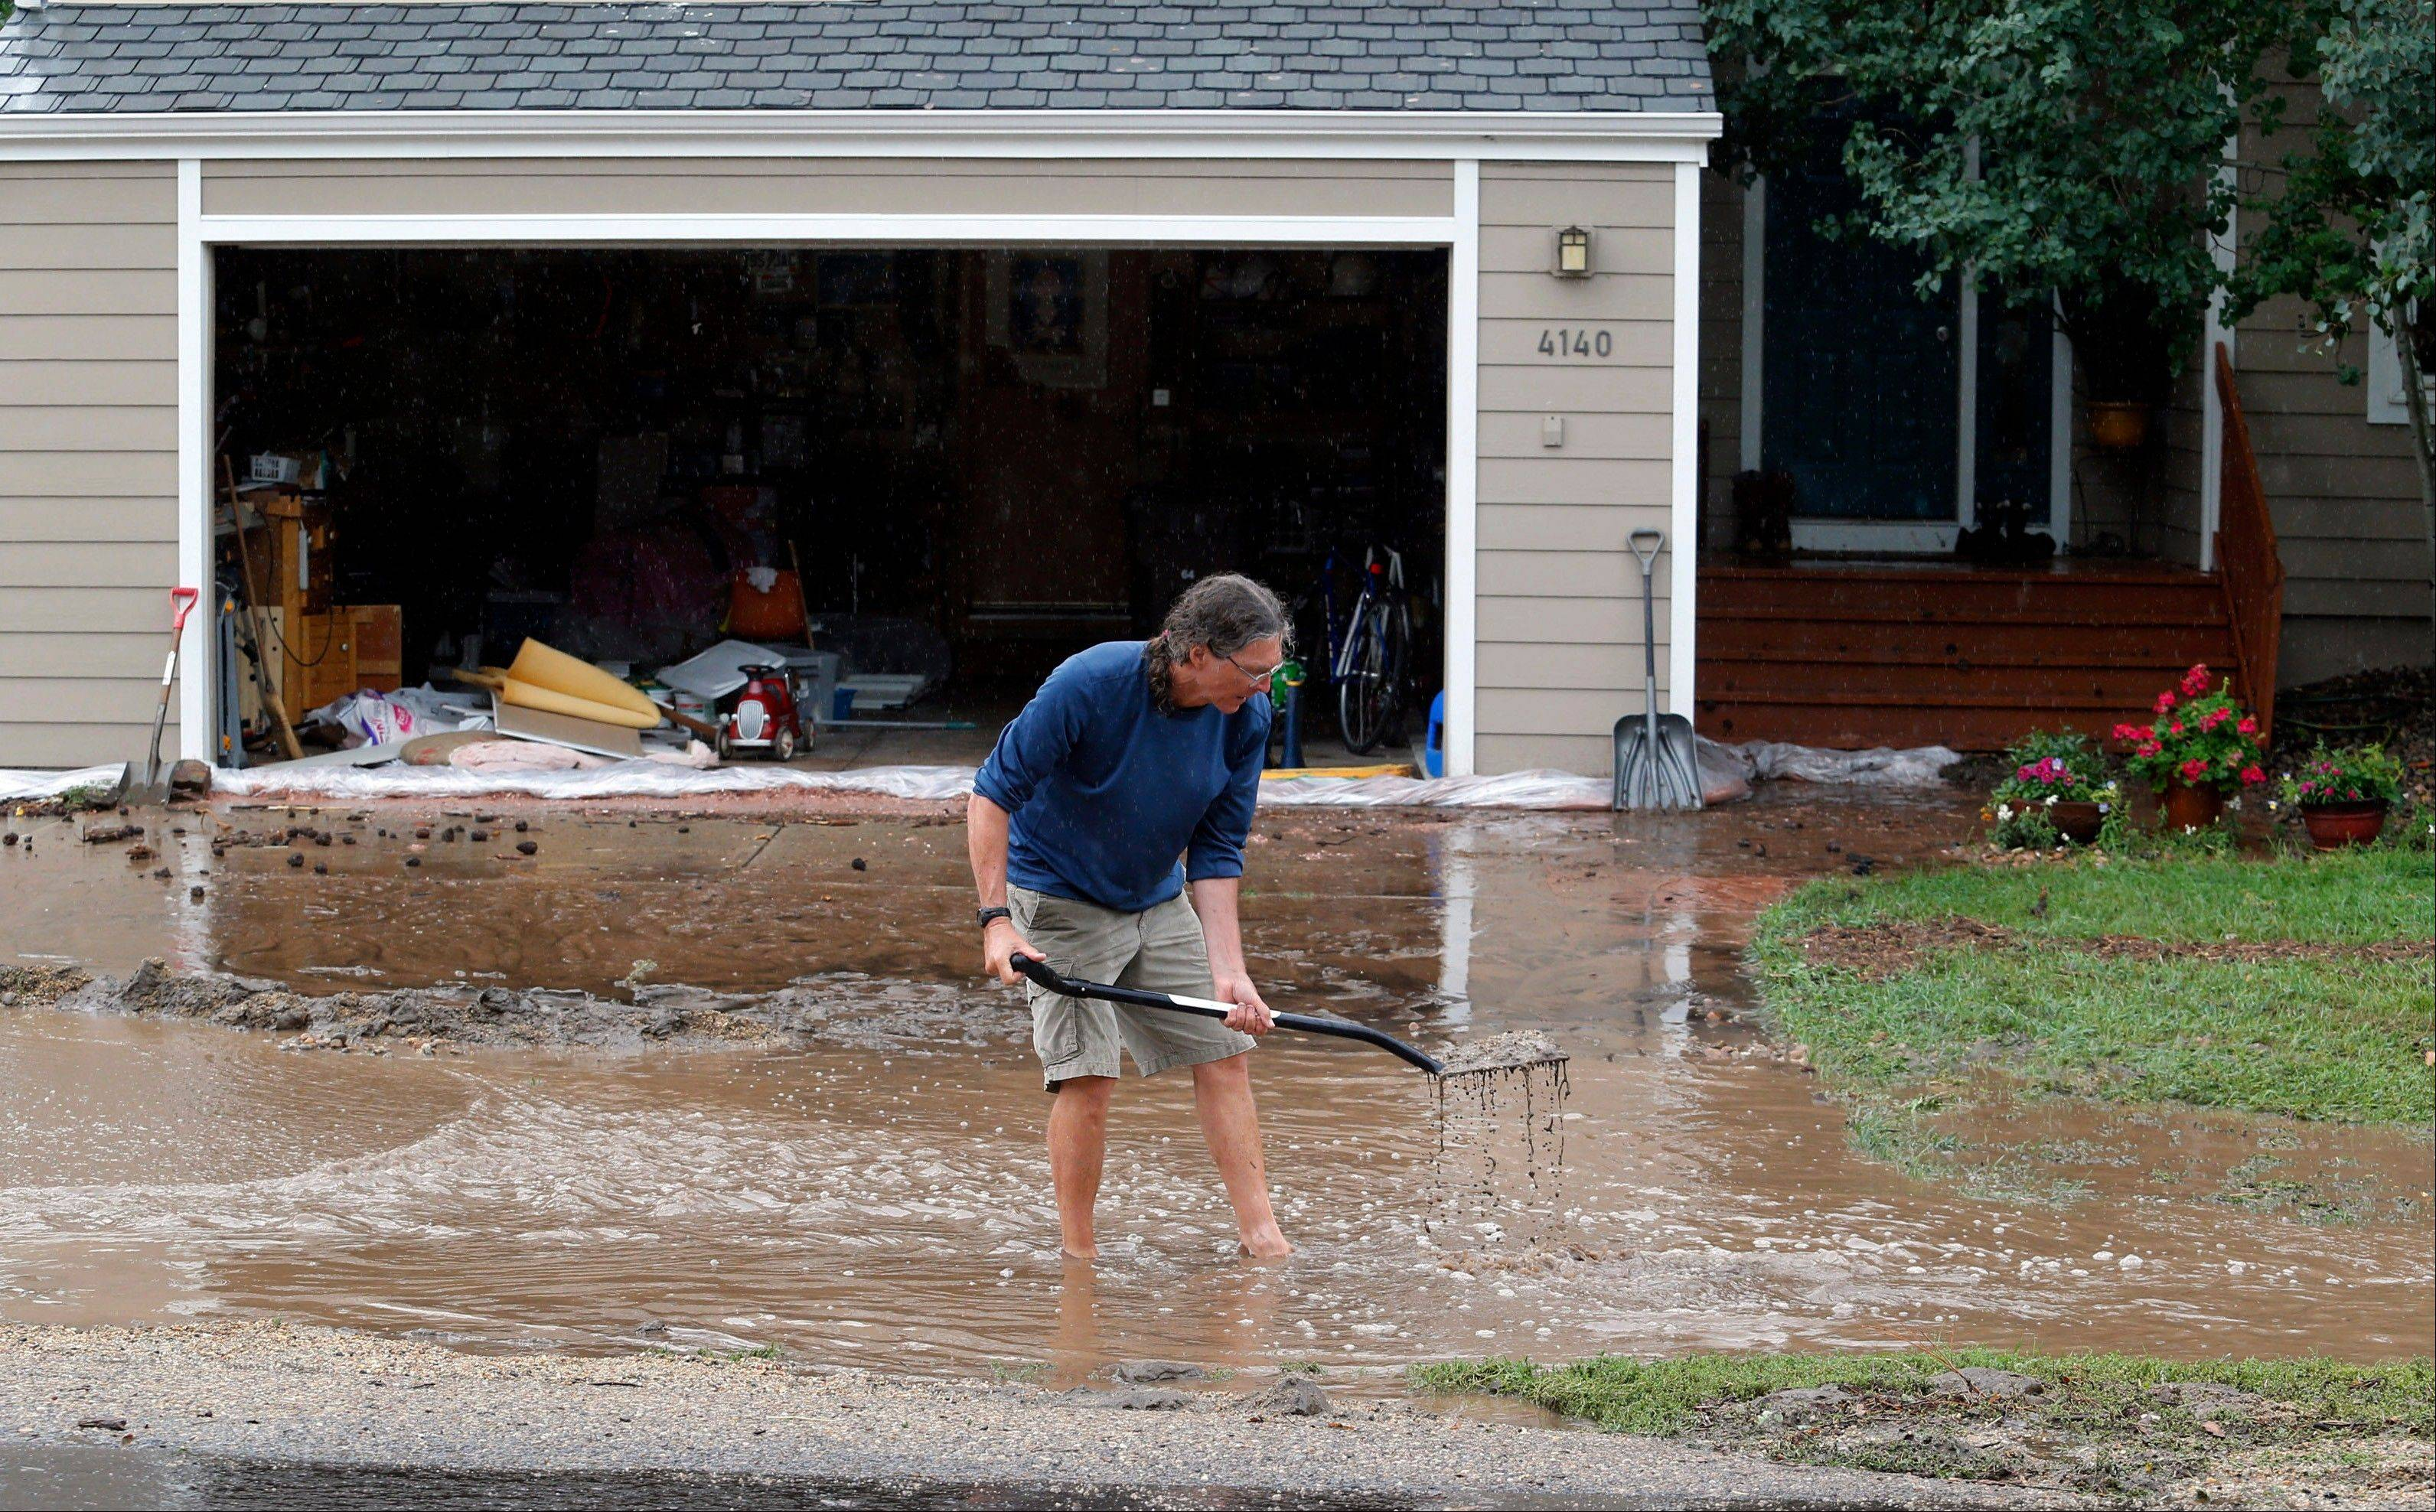 Brian Flynn, of Oregon, clears a drain in front of his sister's home in Boulder, Colo., on Thursday, Sept. 12, 2013. Flash flooding in Colorado has cut off access to towns, closed the University of Colorado in Boulder and left at least three people dead.